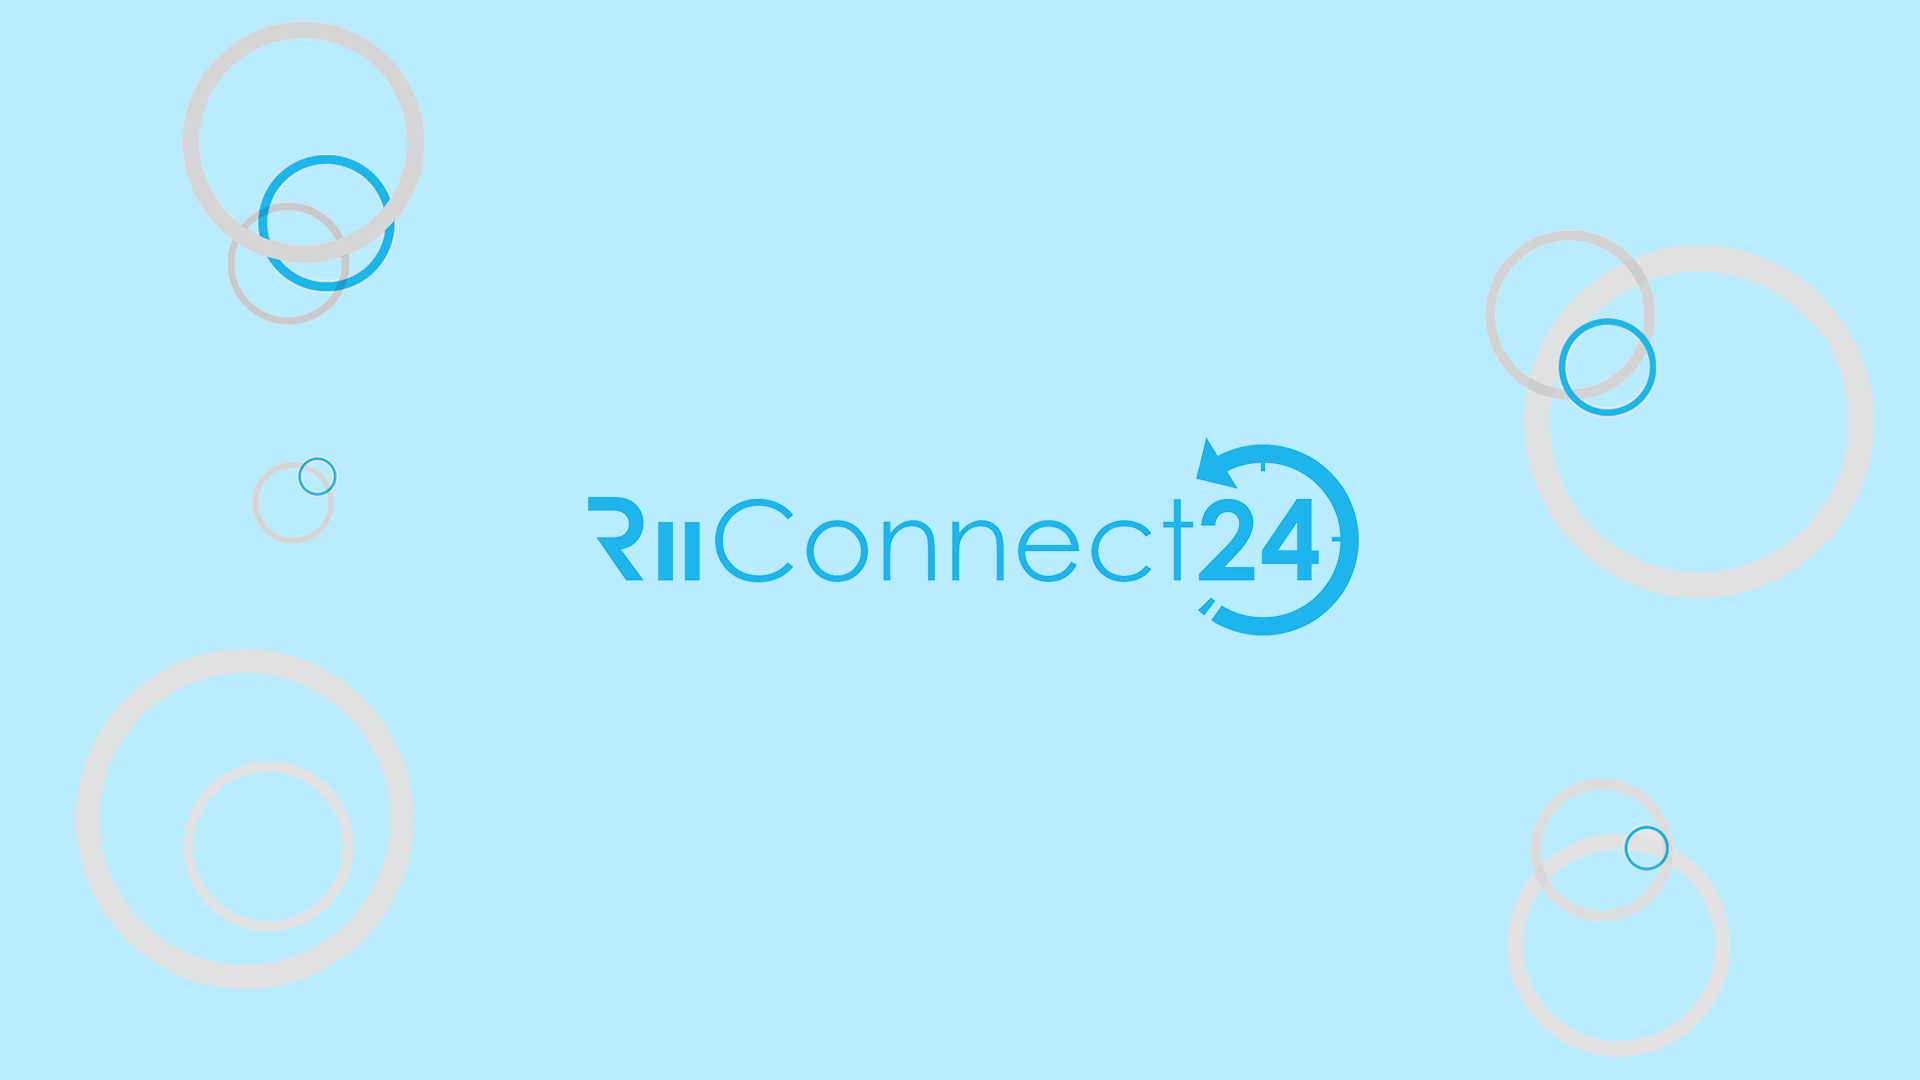 riiconnect24_background_1_1920x1080.png